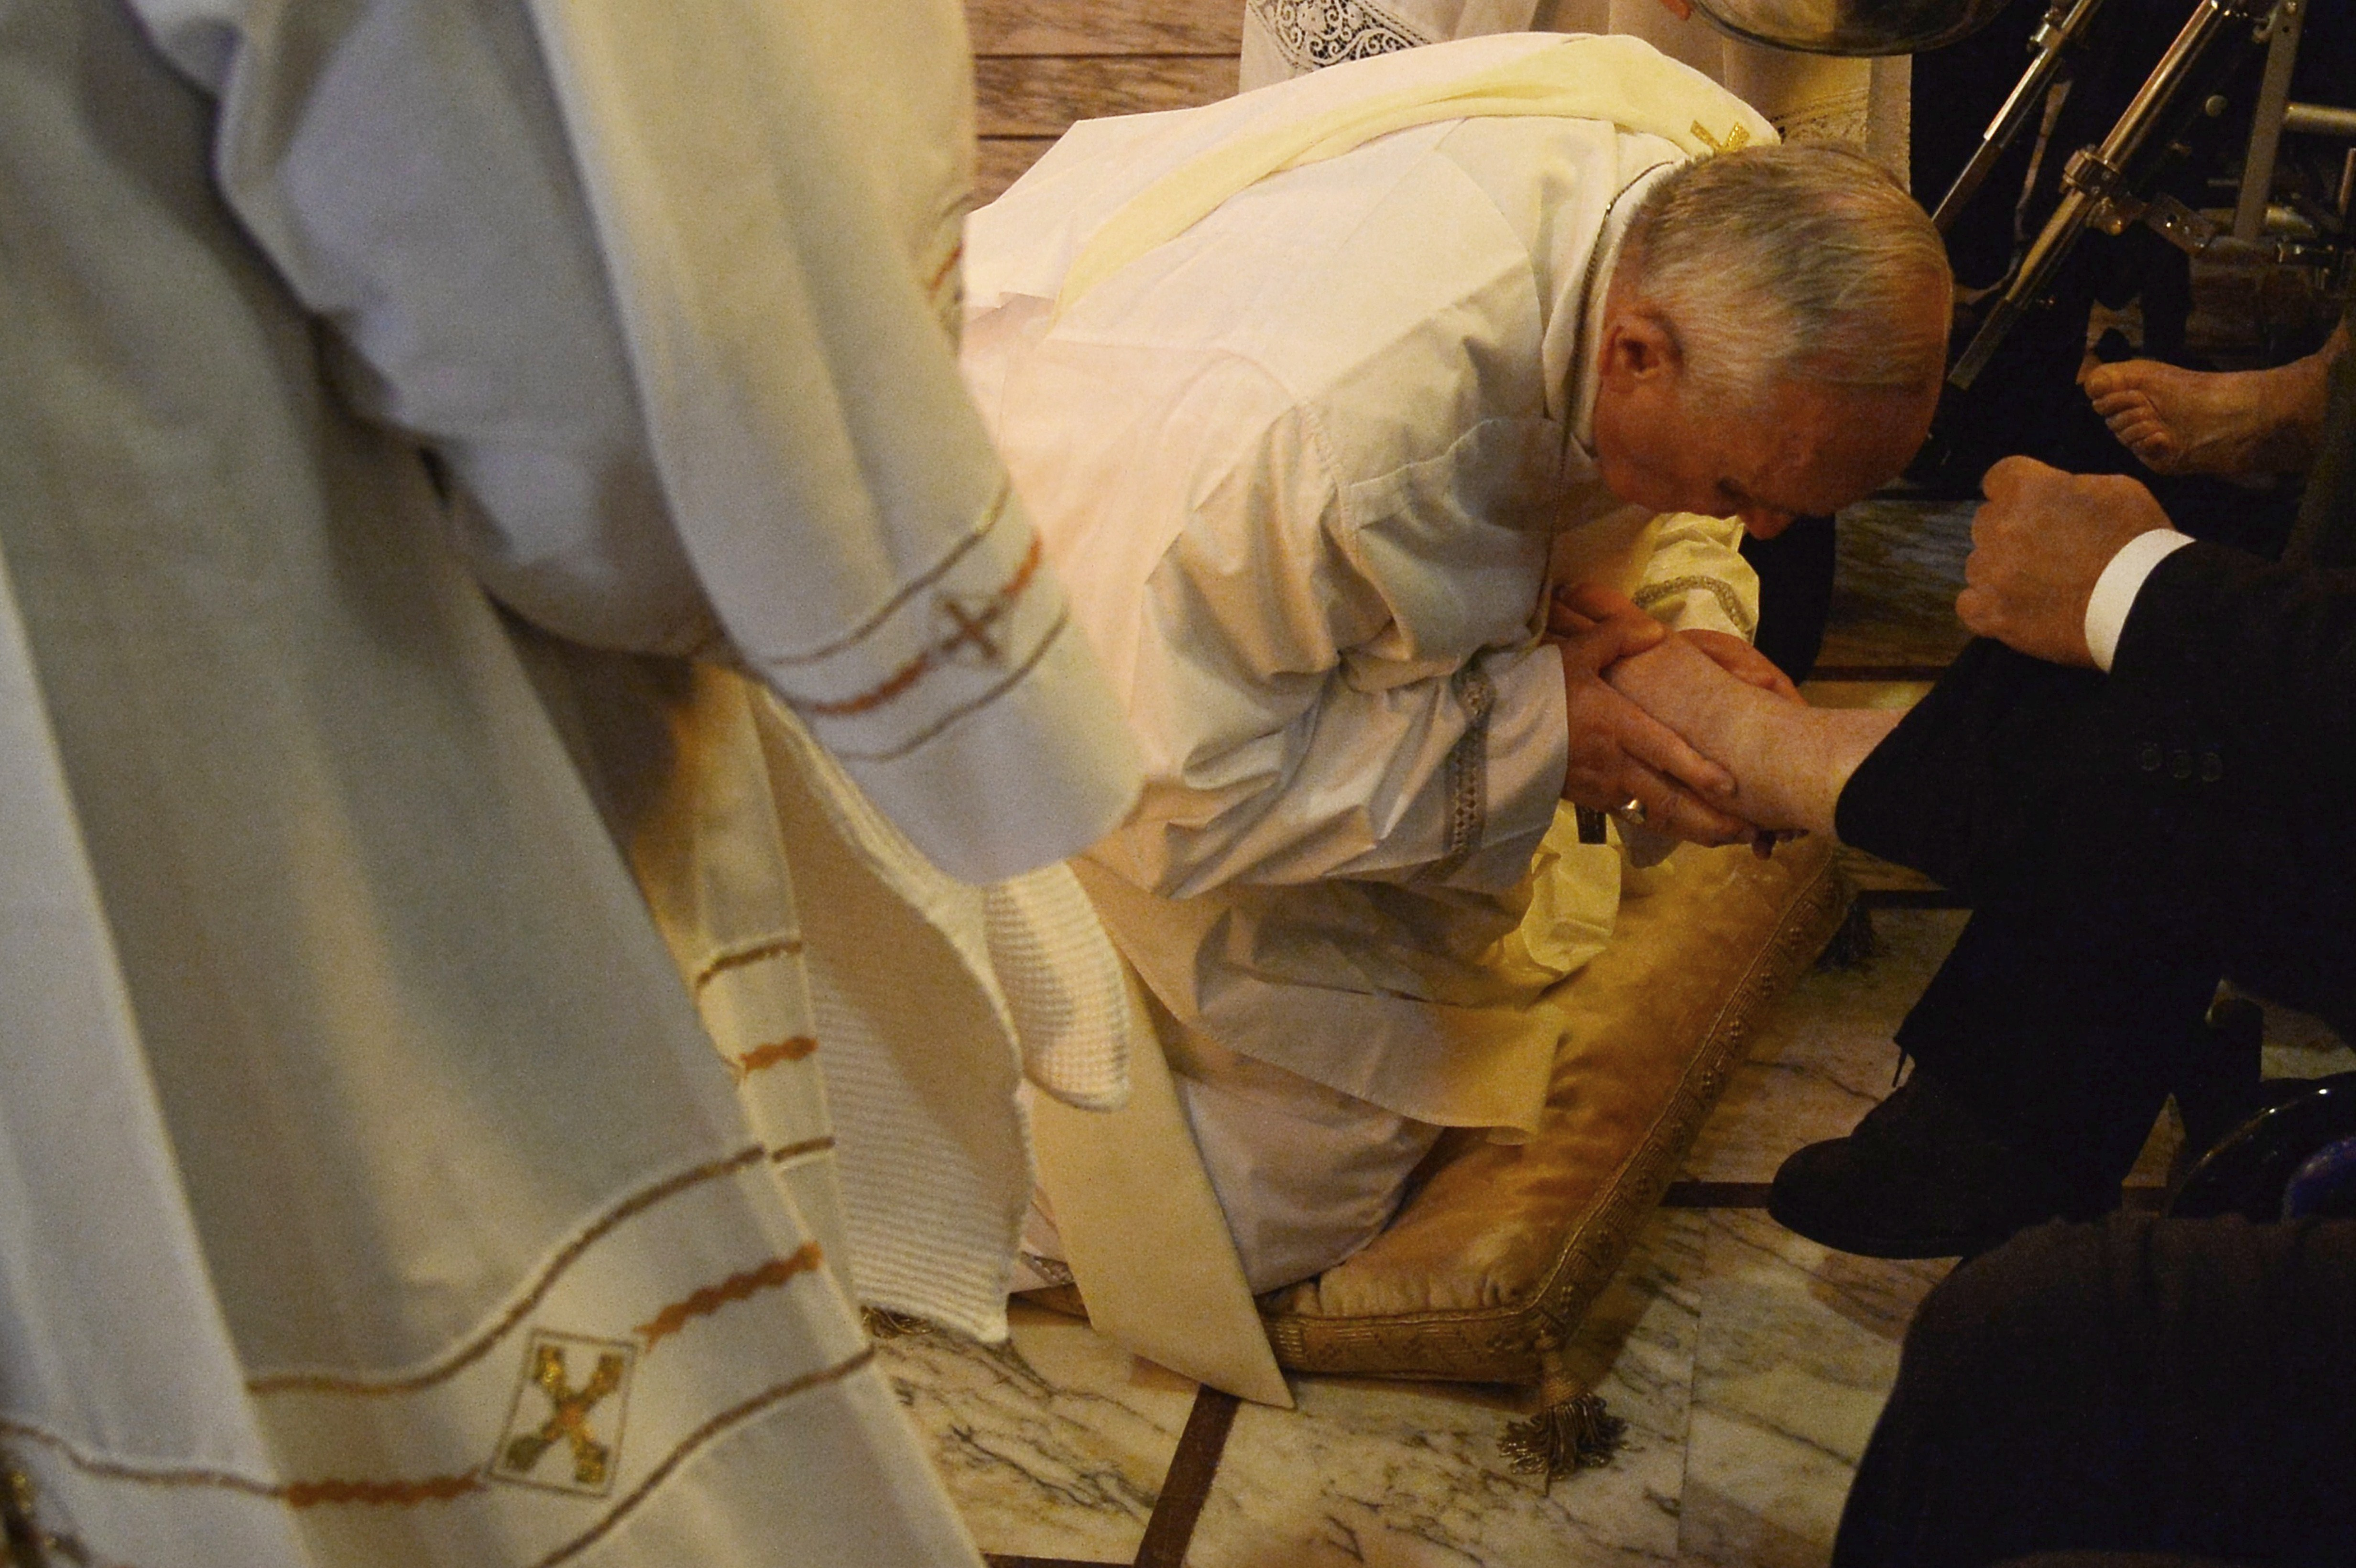 Pope Francis performs the traditional washing of the feet during a visit at a center for disabled people as part of Holy Thursday and Holy Week, April 17, 2014 in Rome.